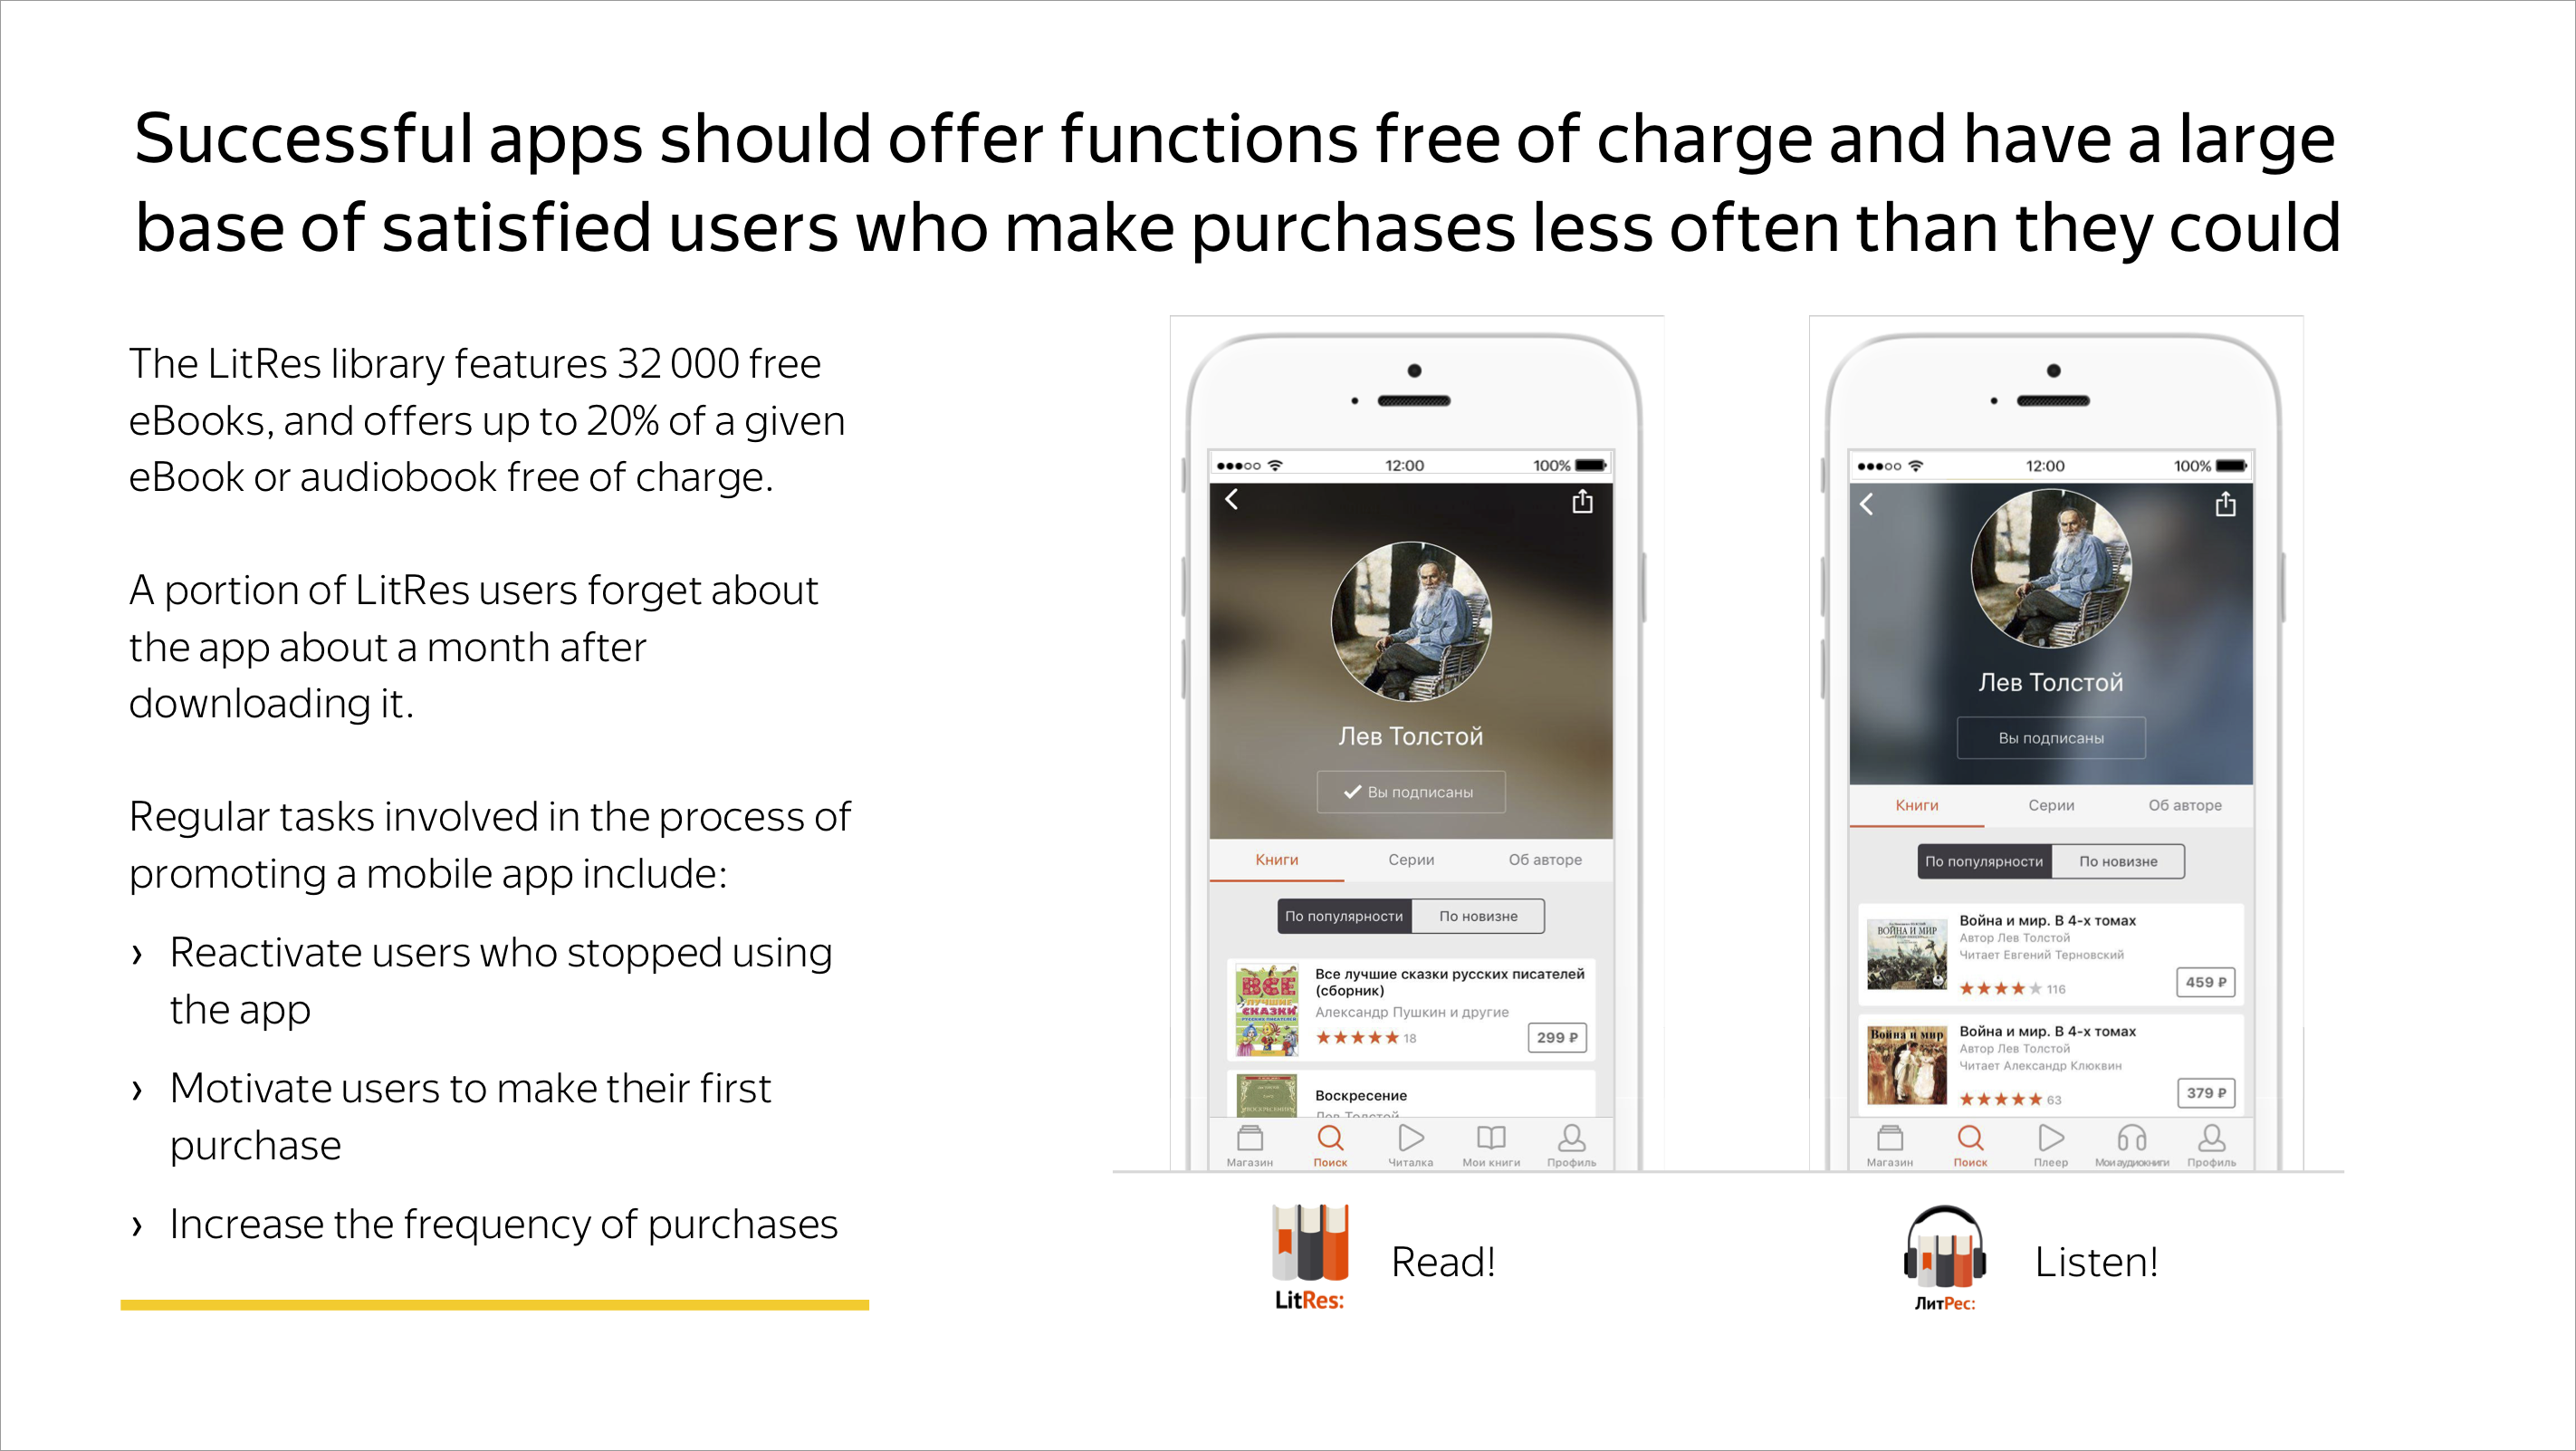 Successful apps should offer functions free of charge and have a large base of satisfied users who make purchases less often than they could